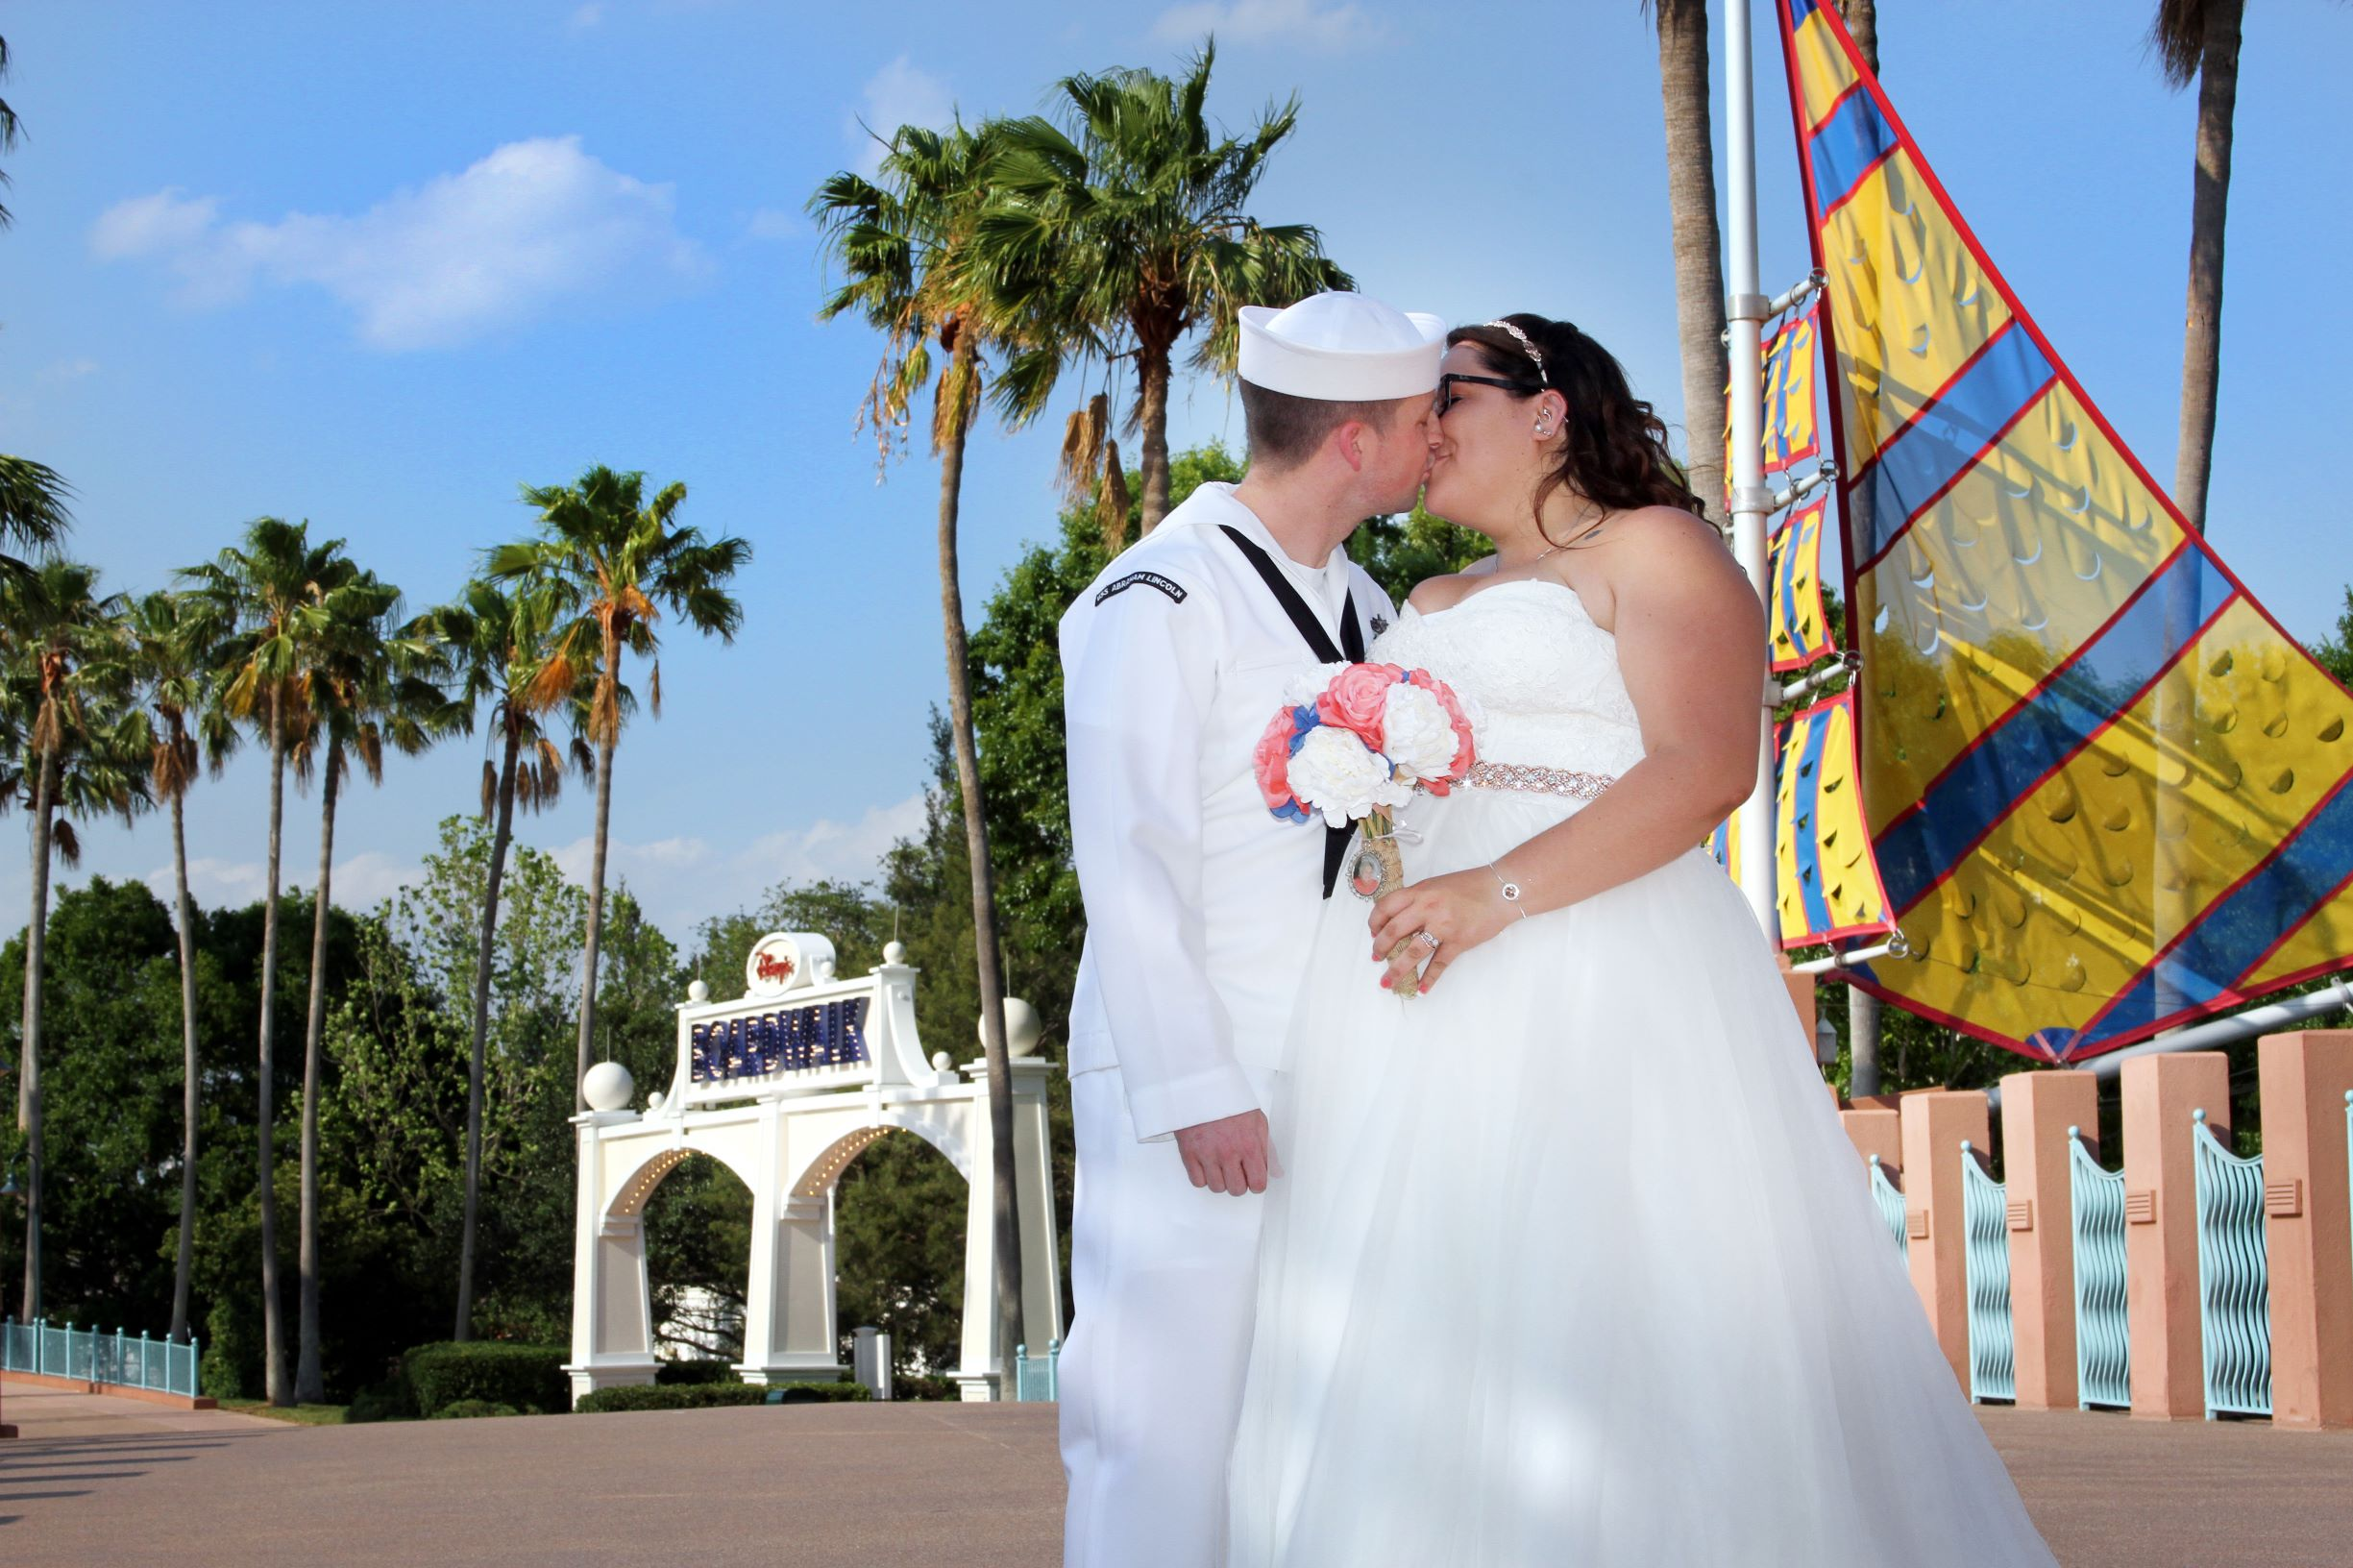 WDW Swan Wedding | The Real Wedding of Alexia and Michael